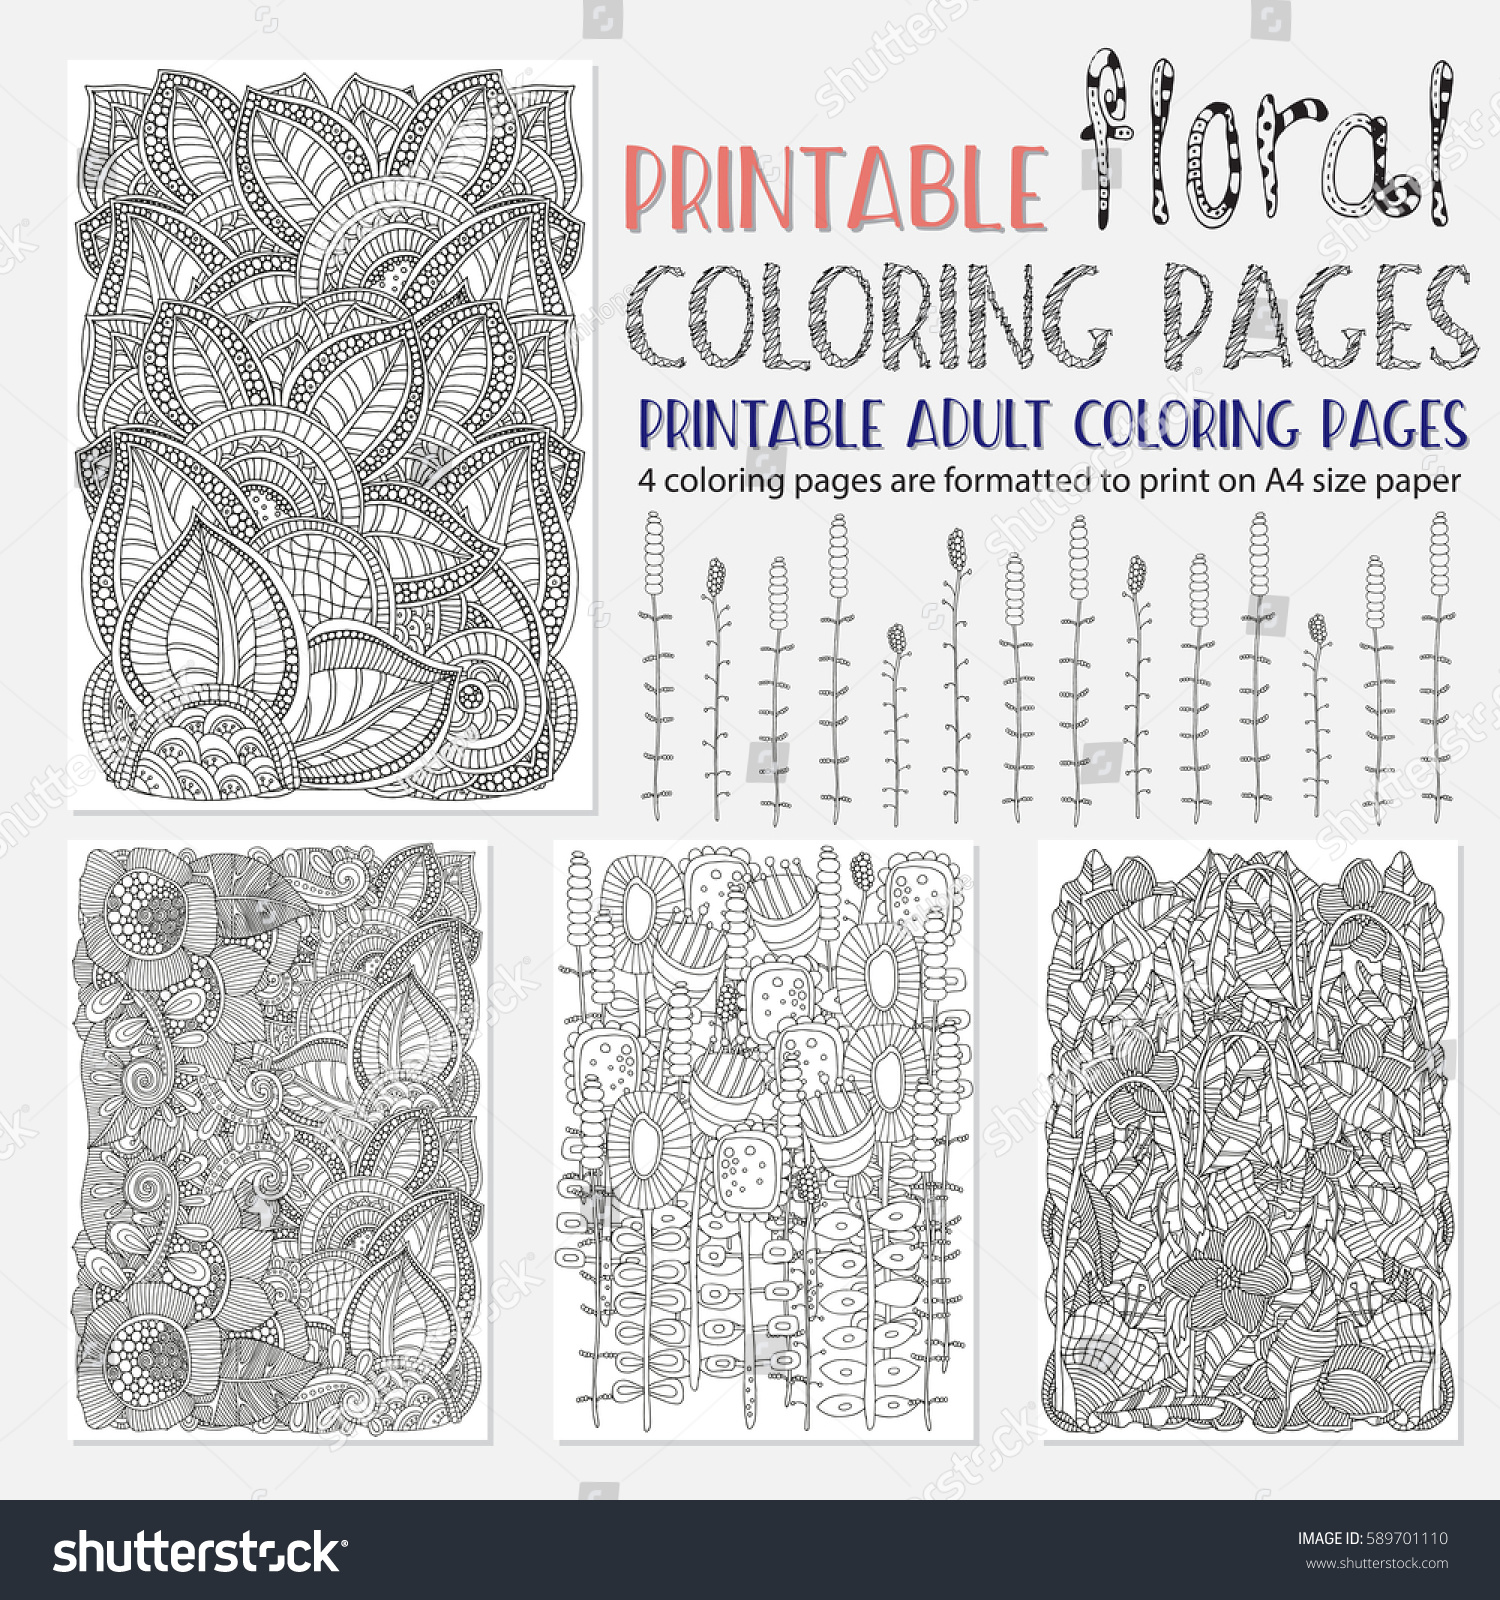 Set Printable Adult Coloring Pages Collection Stock Vector 589701110 ...